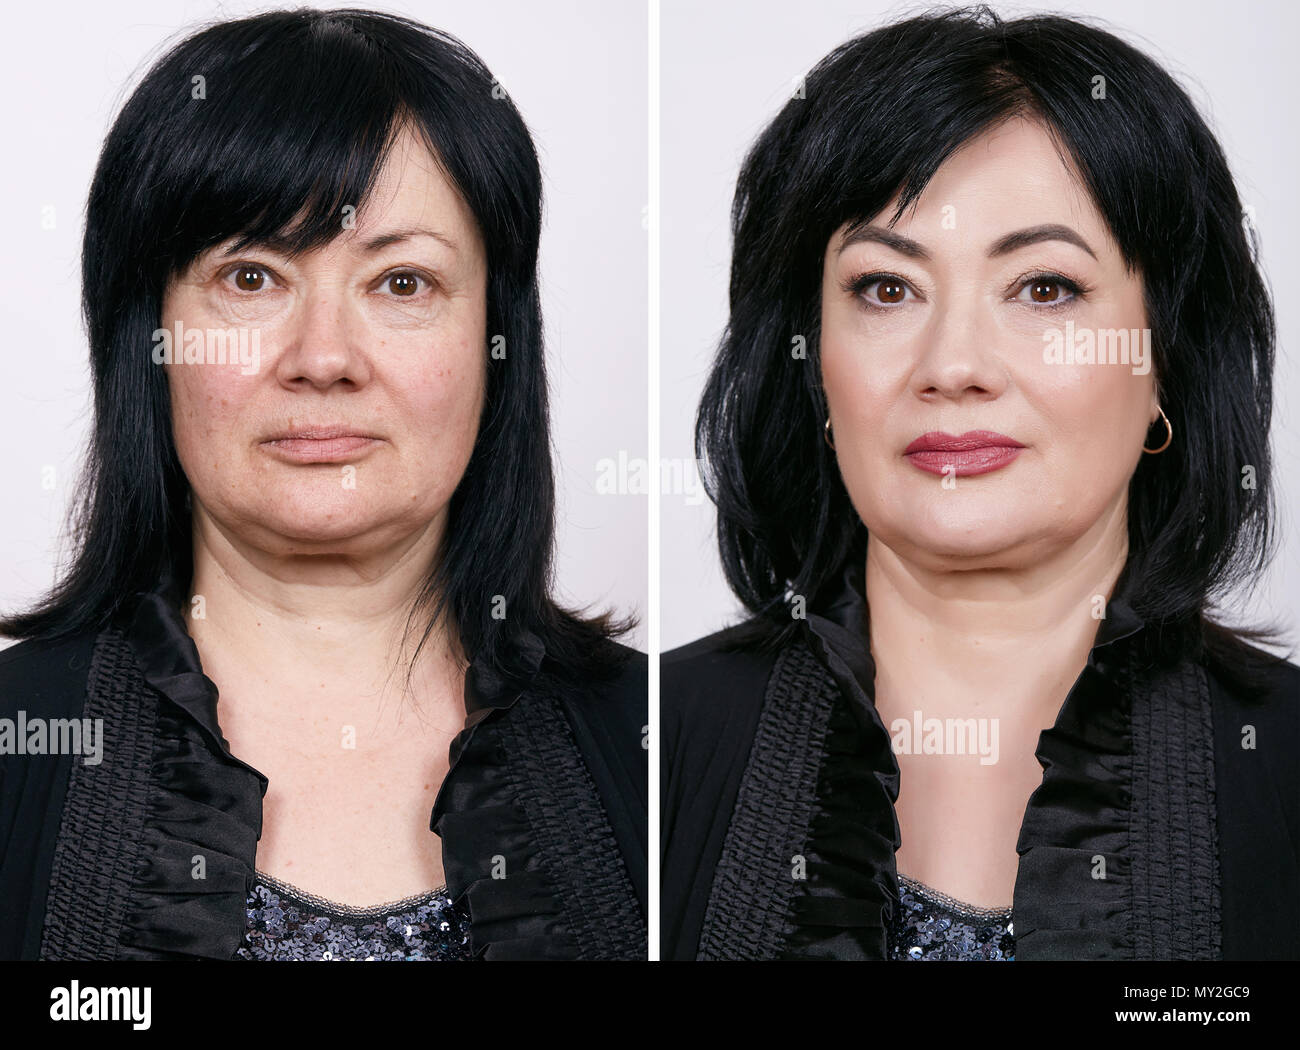 Comparative portrait of mature woman with and without makeup. - Stock Image